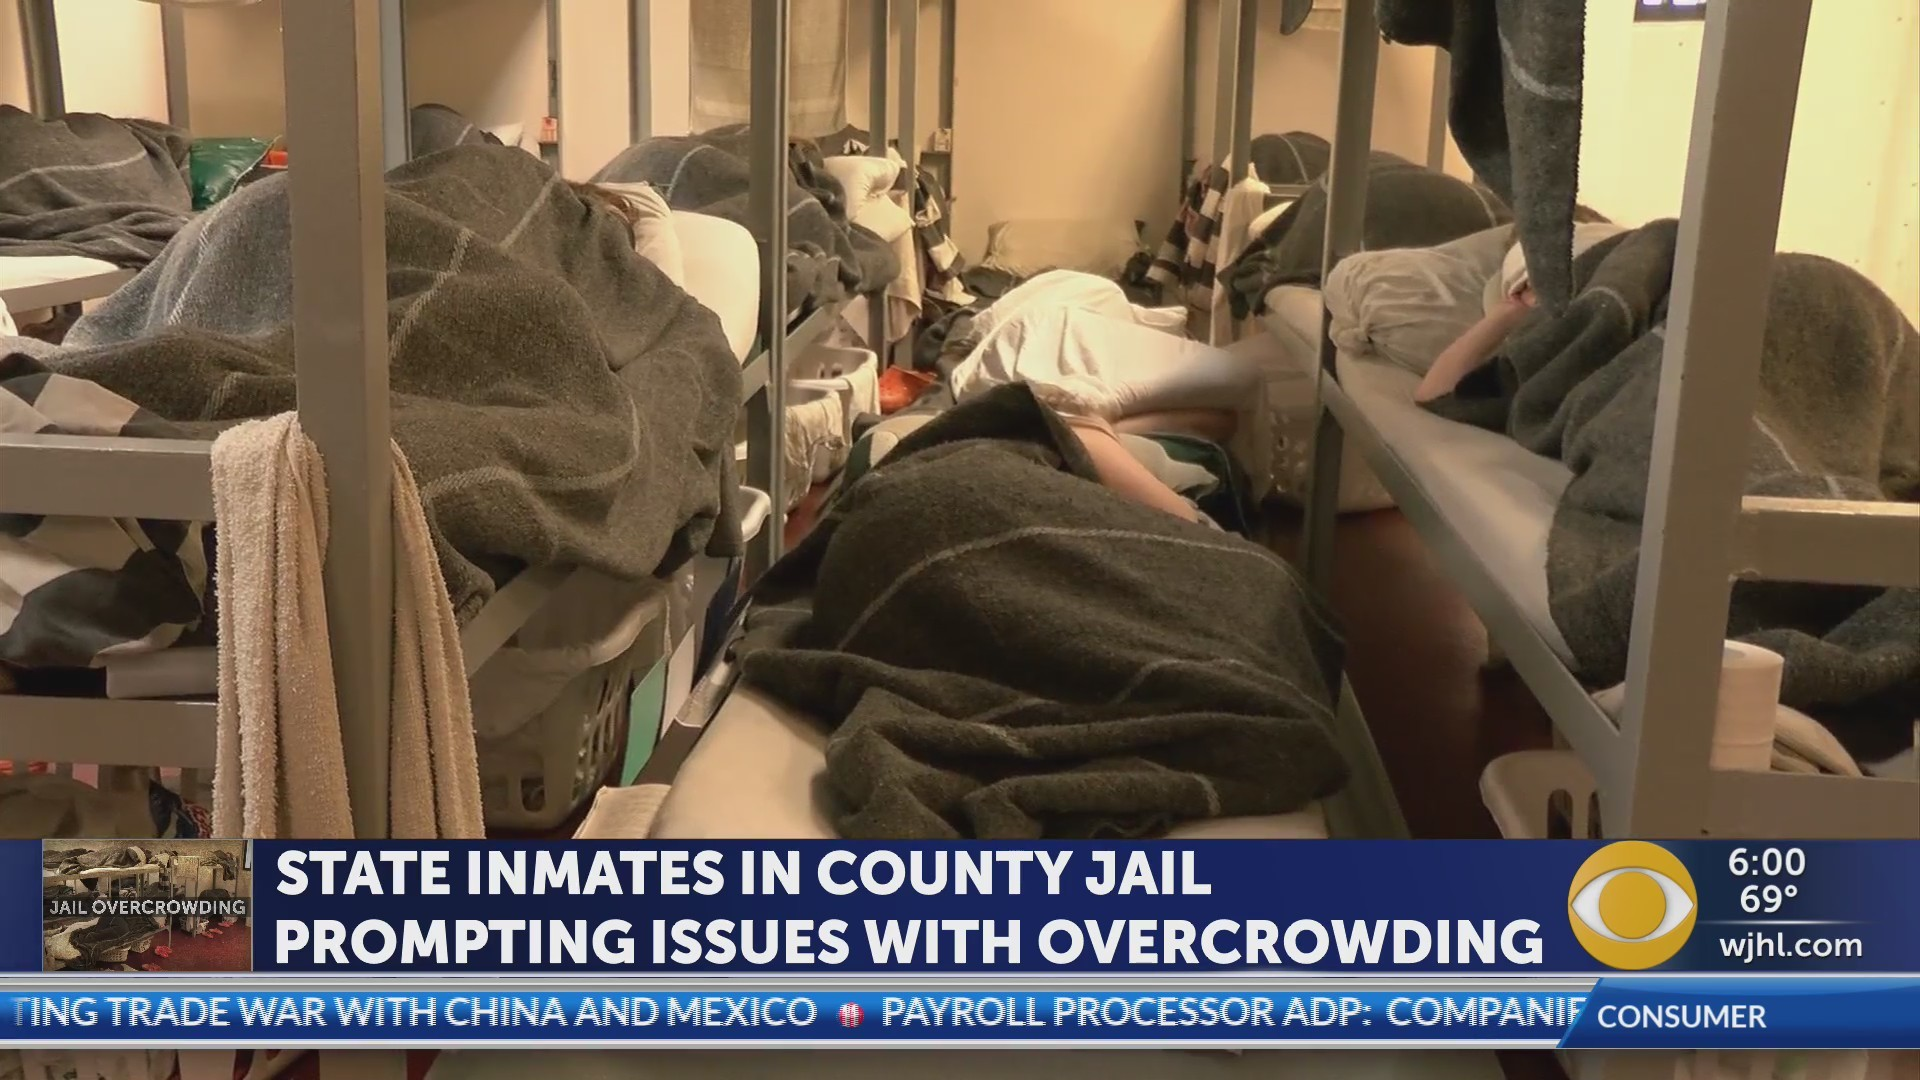 State inmate levels contributing to overcrowding in county jails